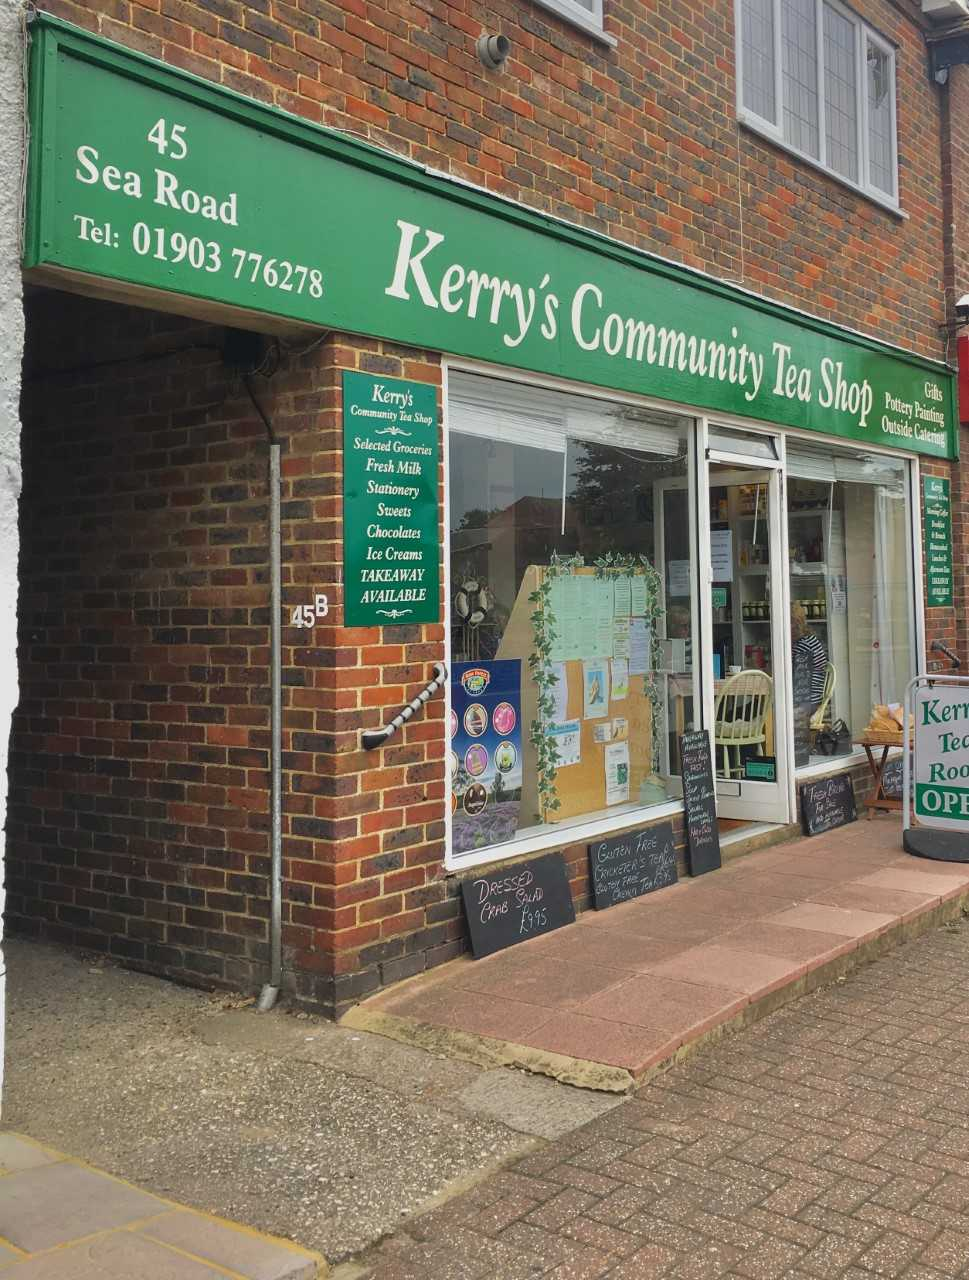 Kerry's Community Tea Shop in East Preston